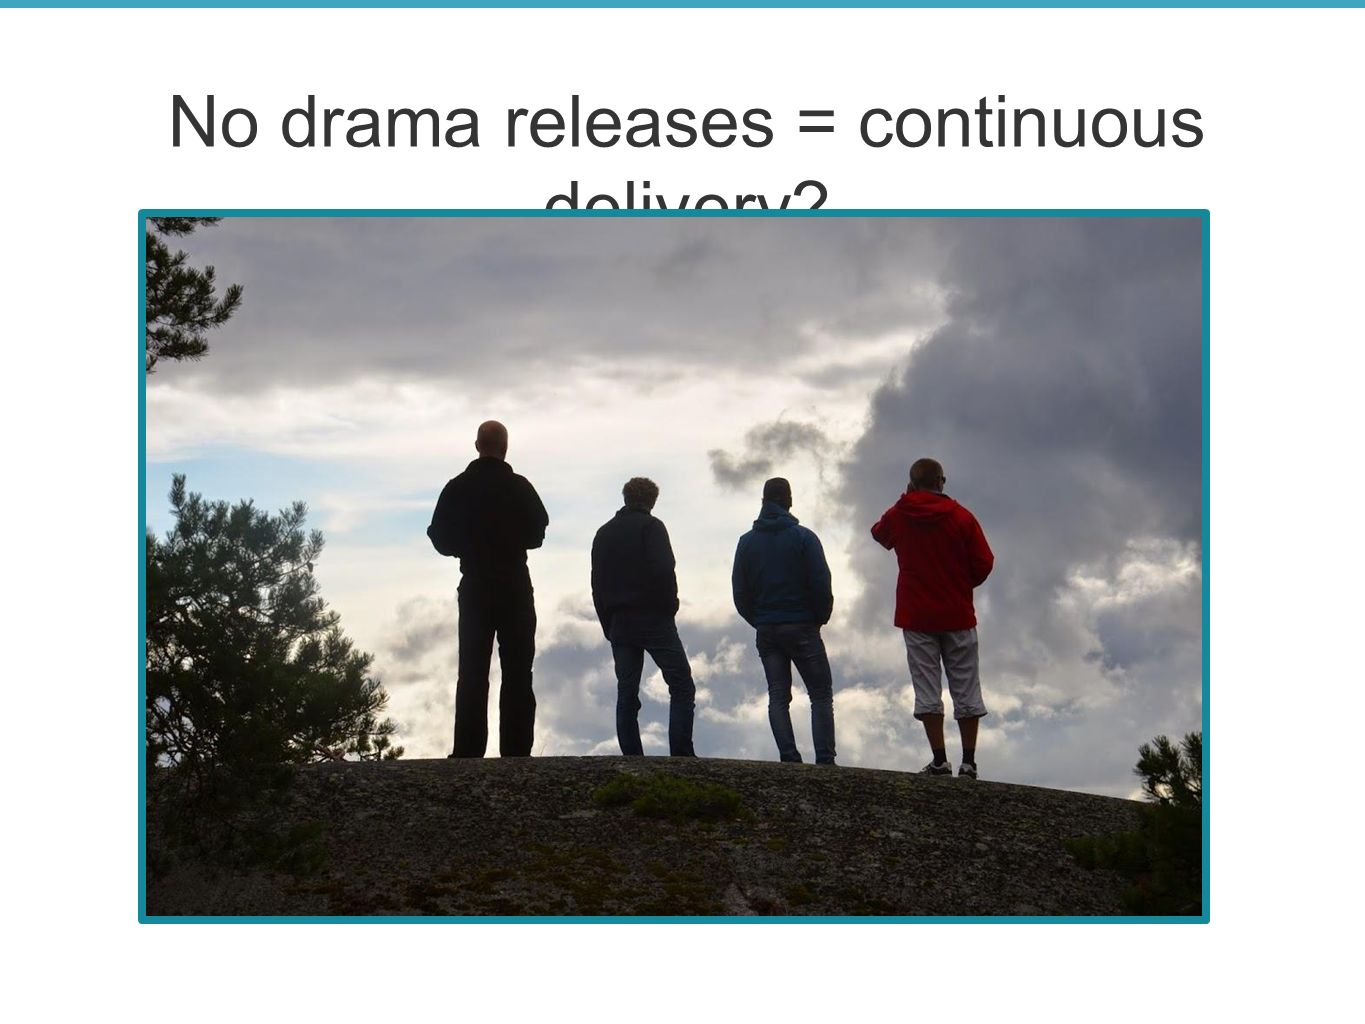 No drama releases = continuous delivery?